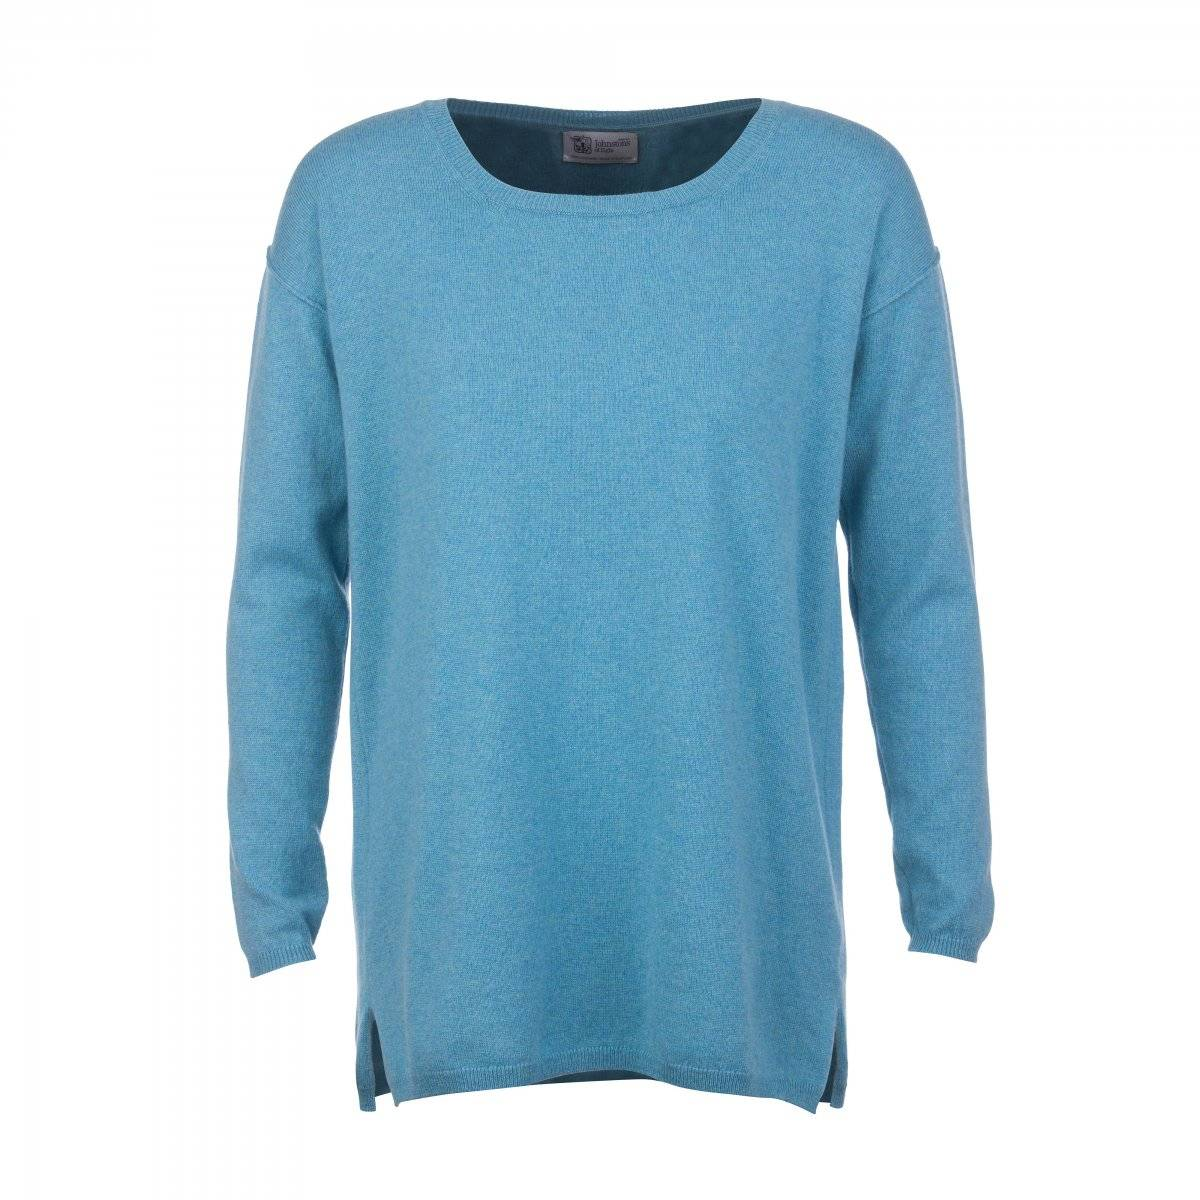 New style women cashmere sweater